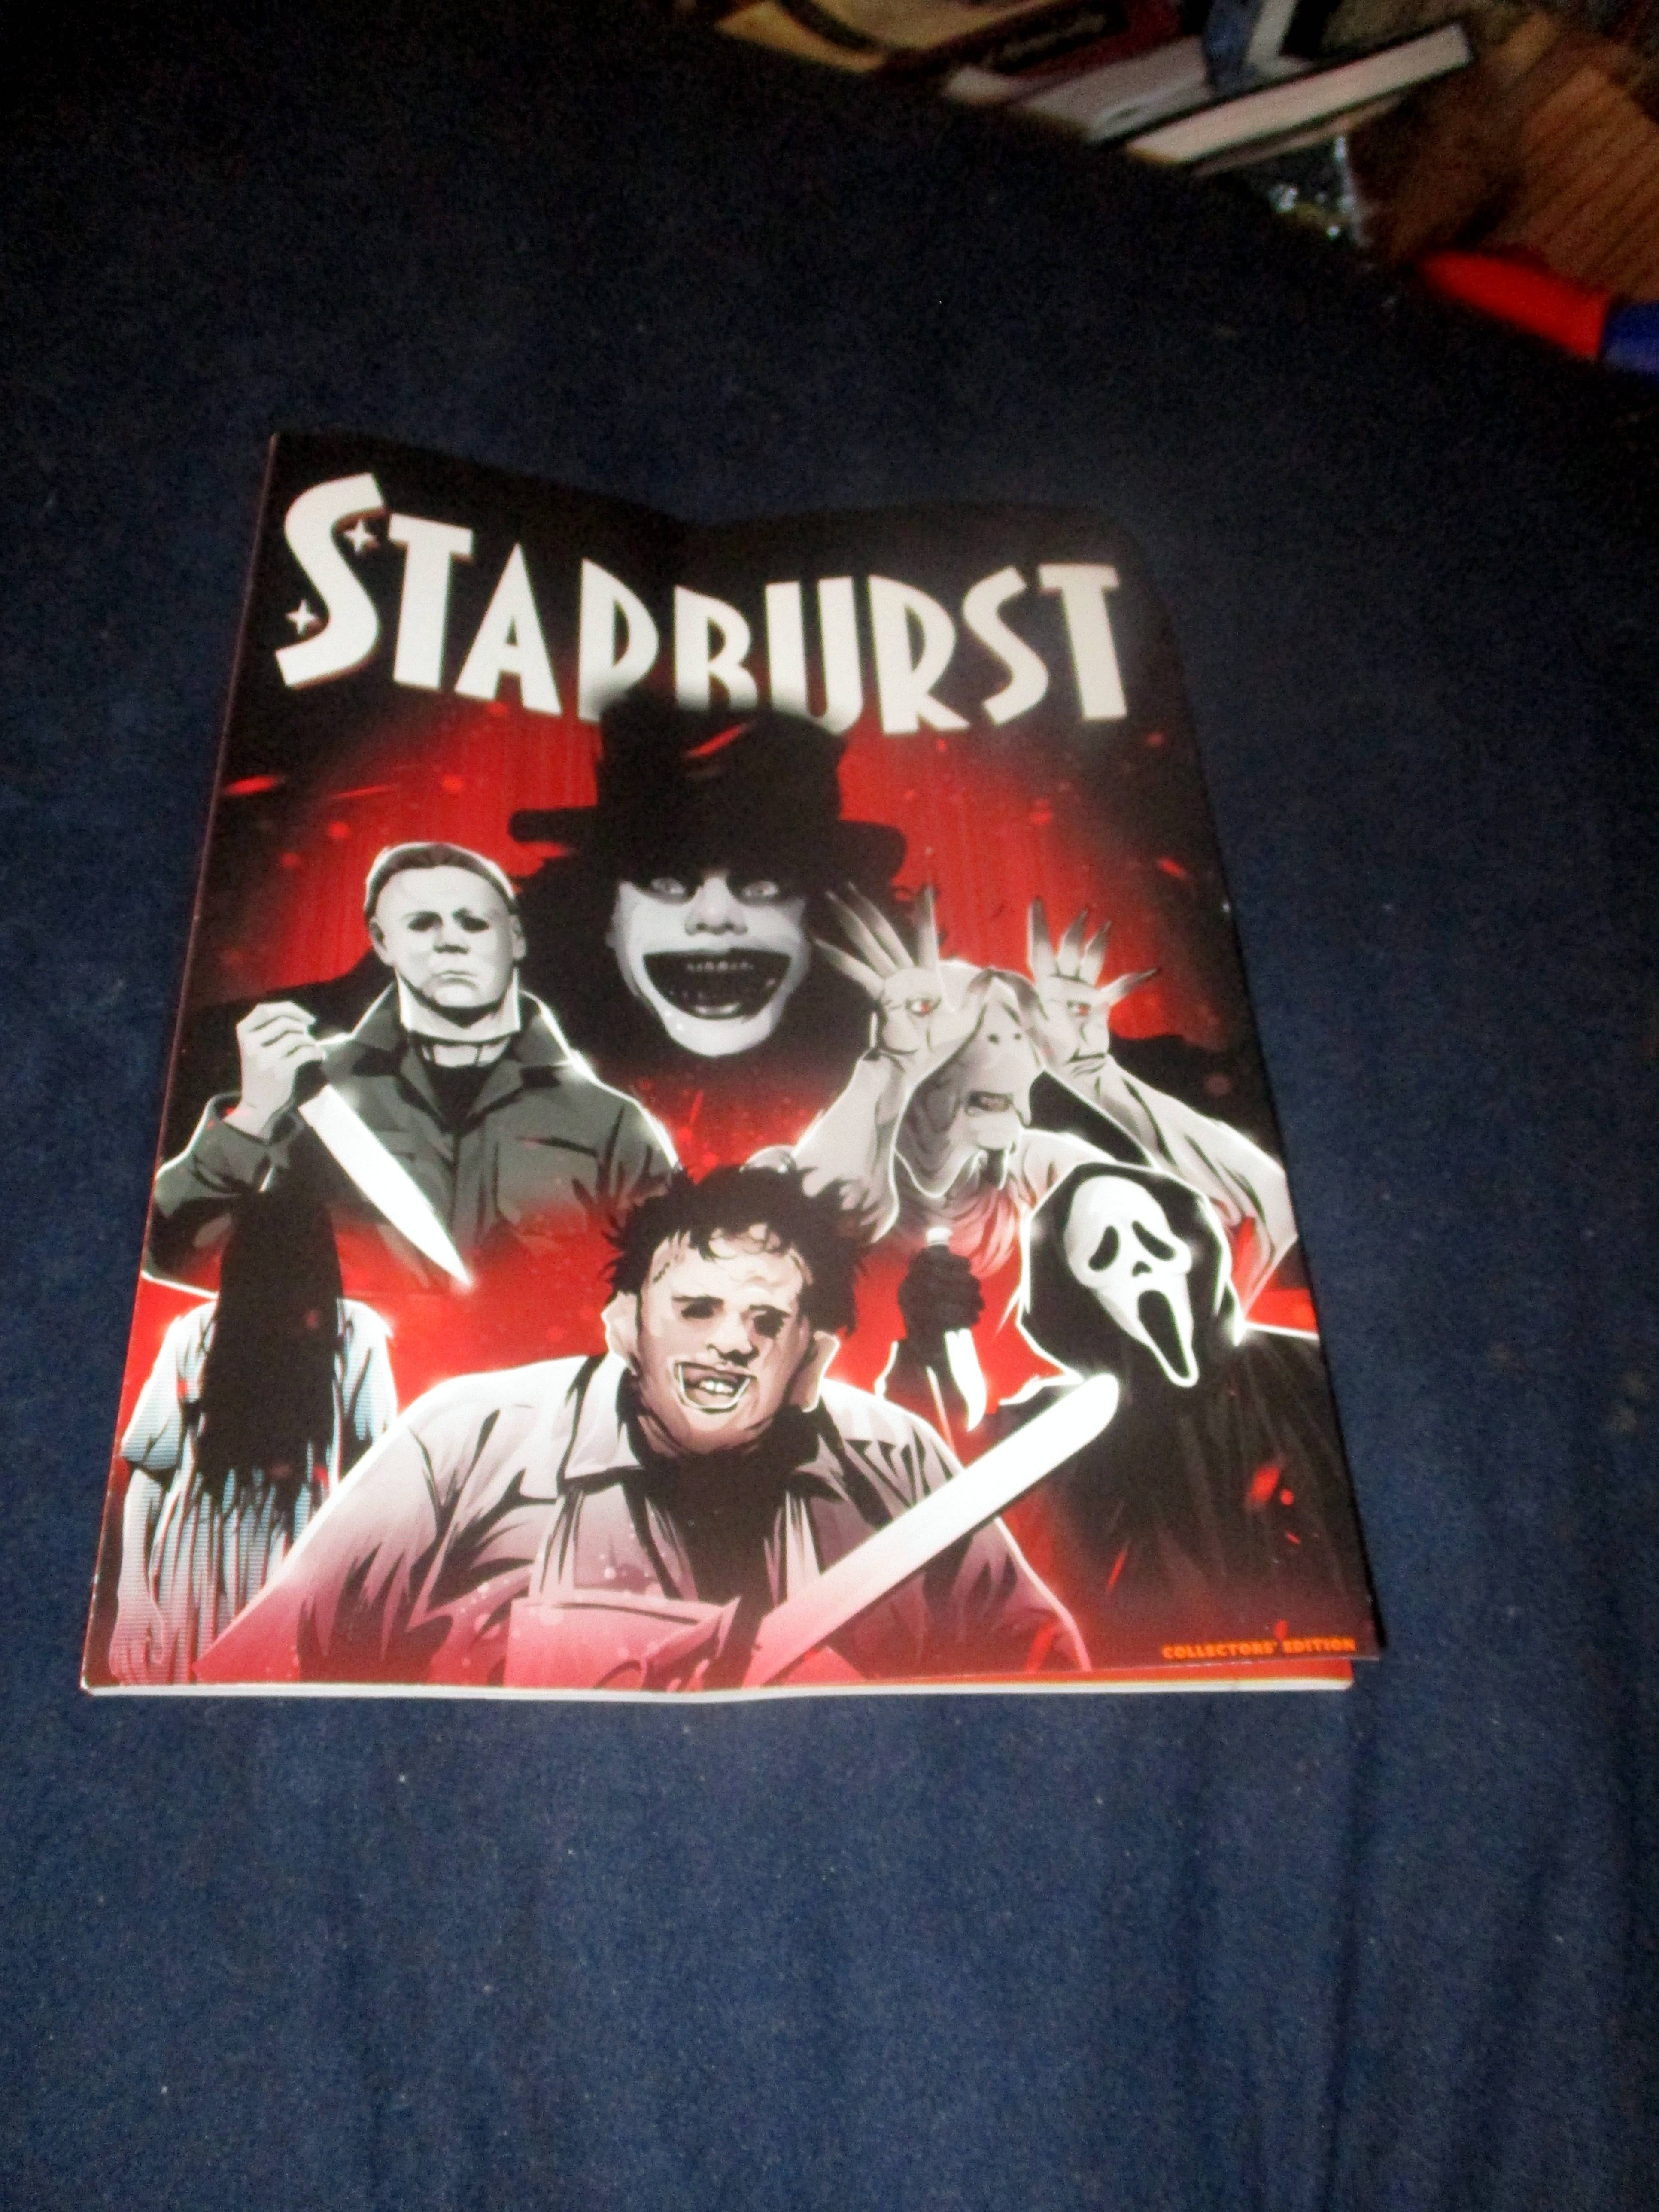 Front Cover of Starburst Magazine #474: Everyone's Entitled to One Good Scare Collectors' Edition at The Wombatorium 2.0: A Capital Idea